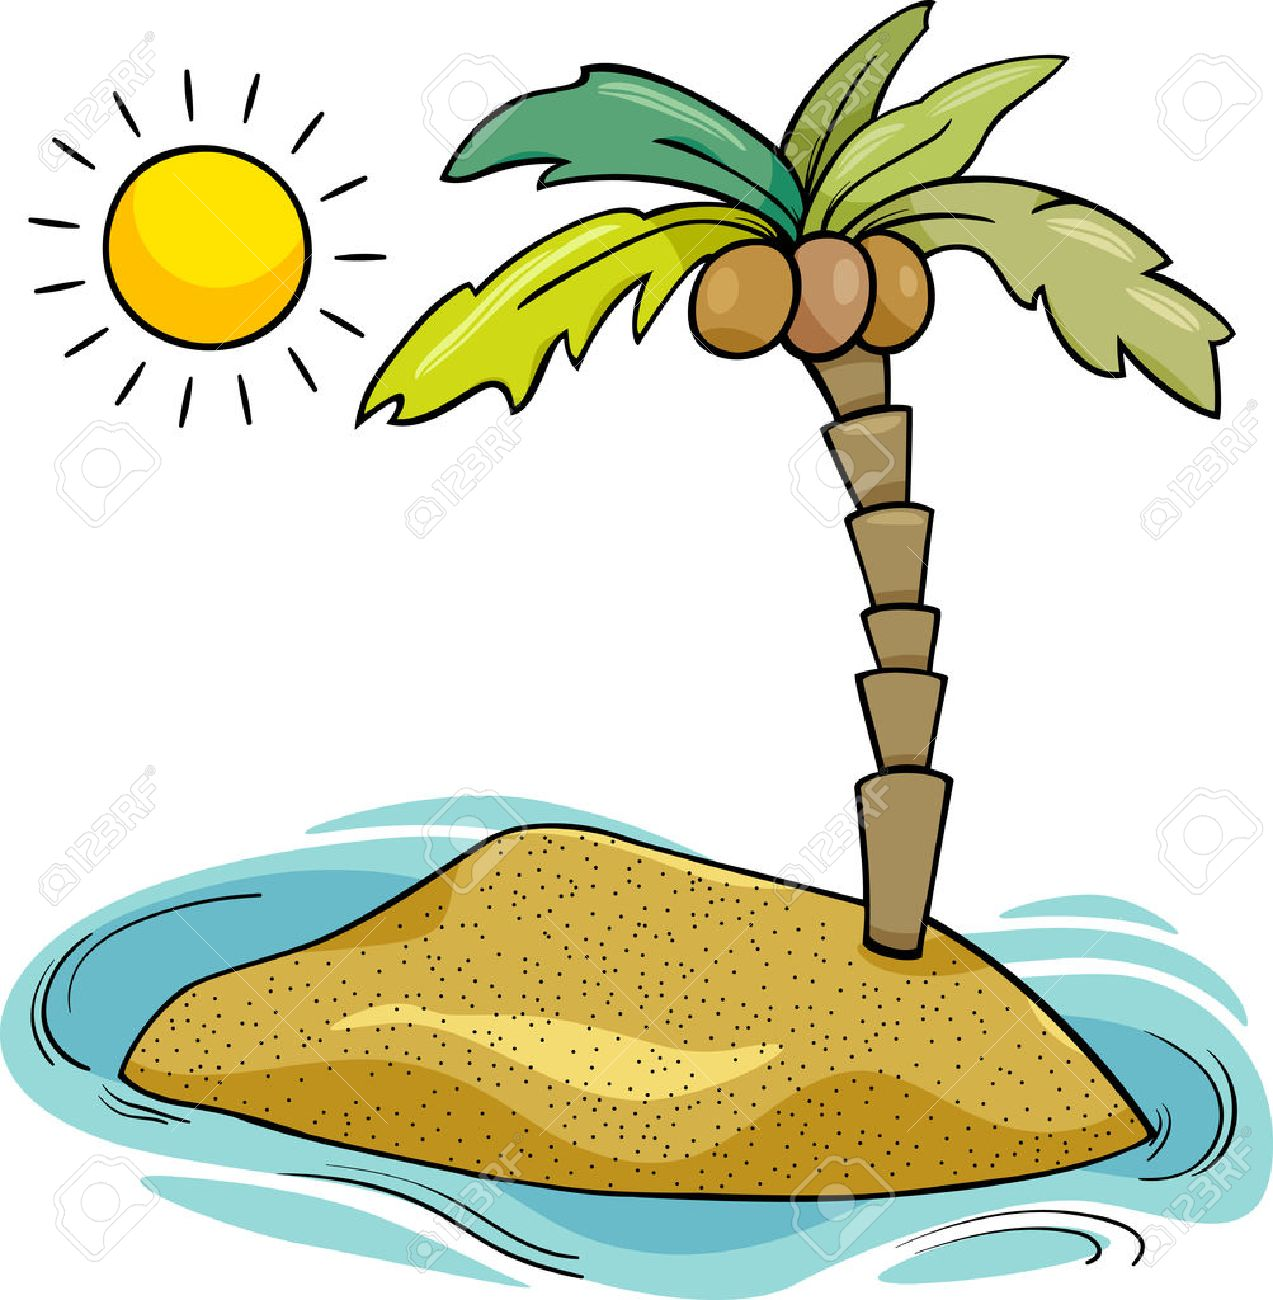 cartoon illustration of desert island with coconut palm royalty free rh 123rf com desert clip art animals for diorama desert clip art animals for diorama